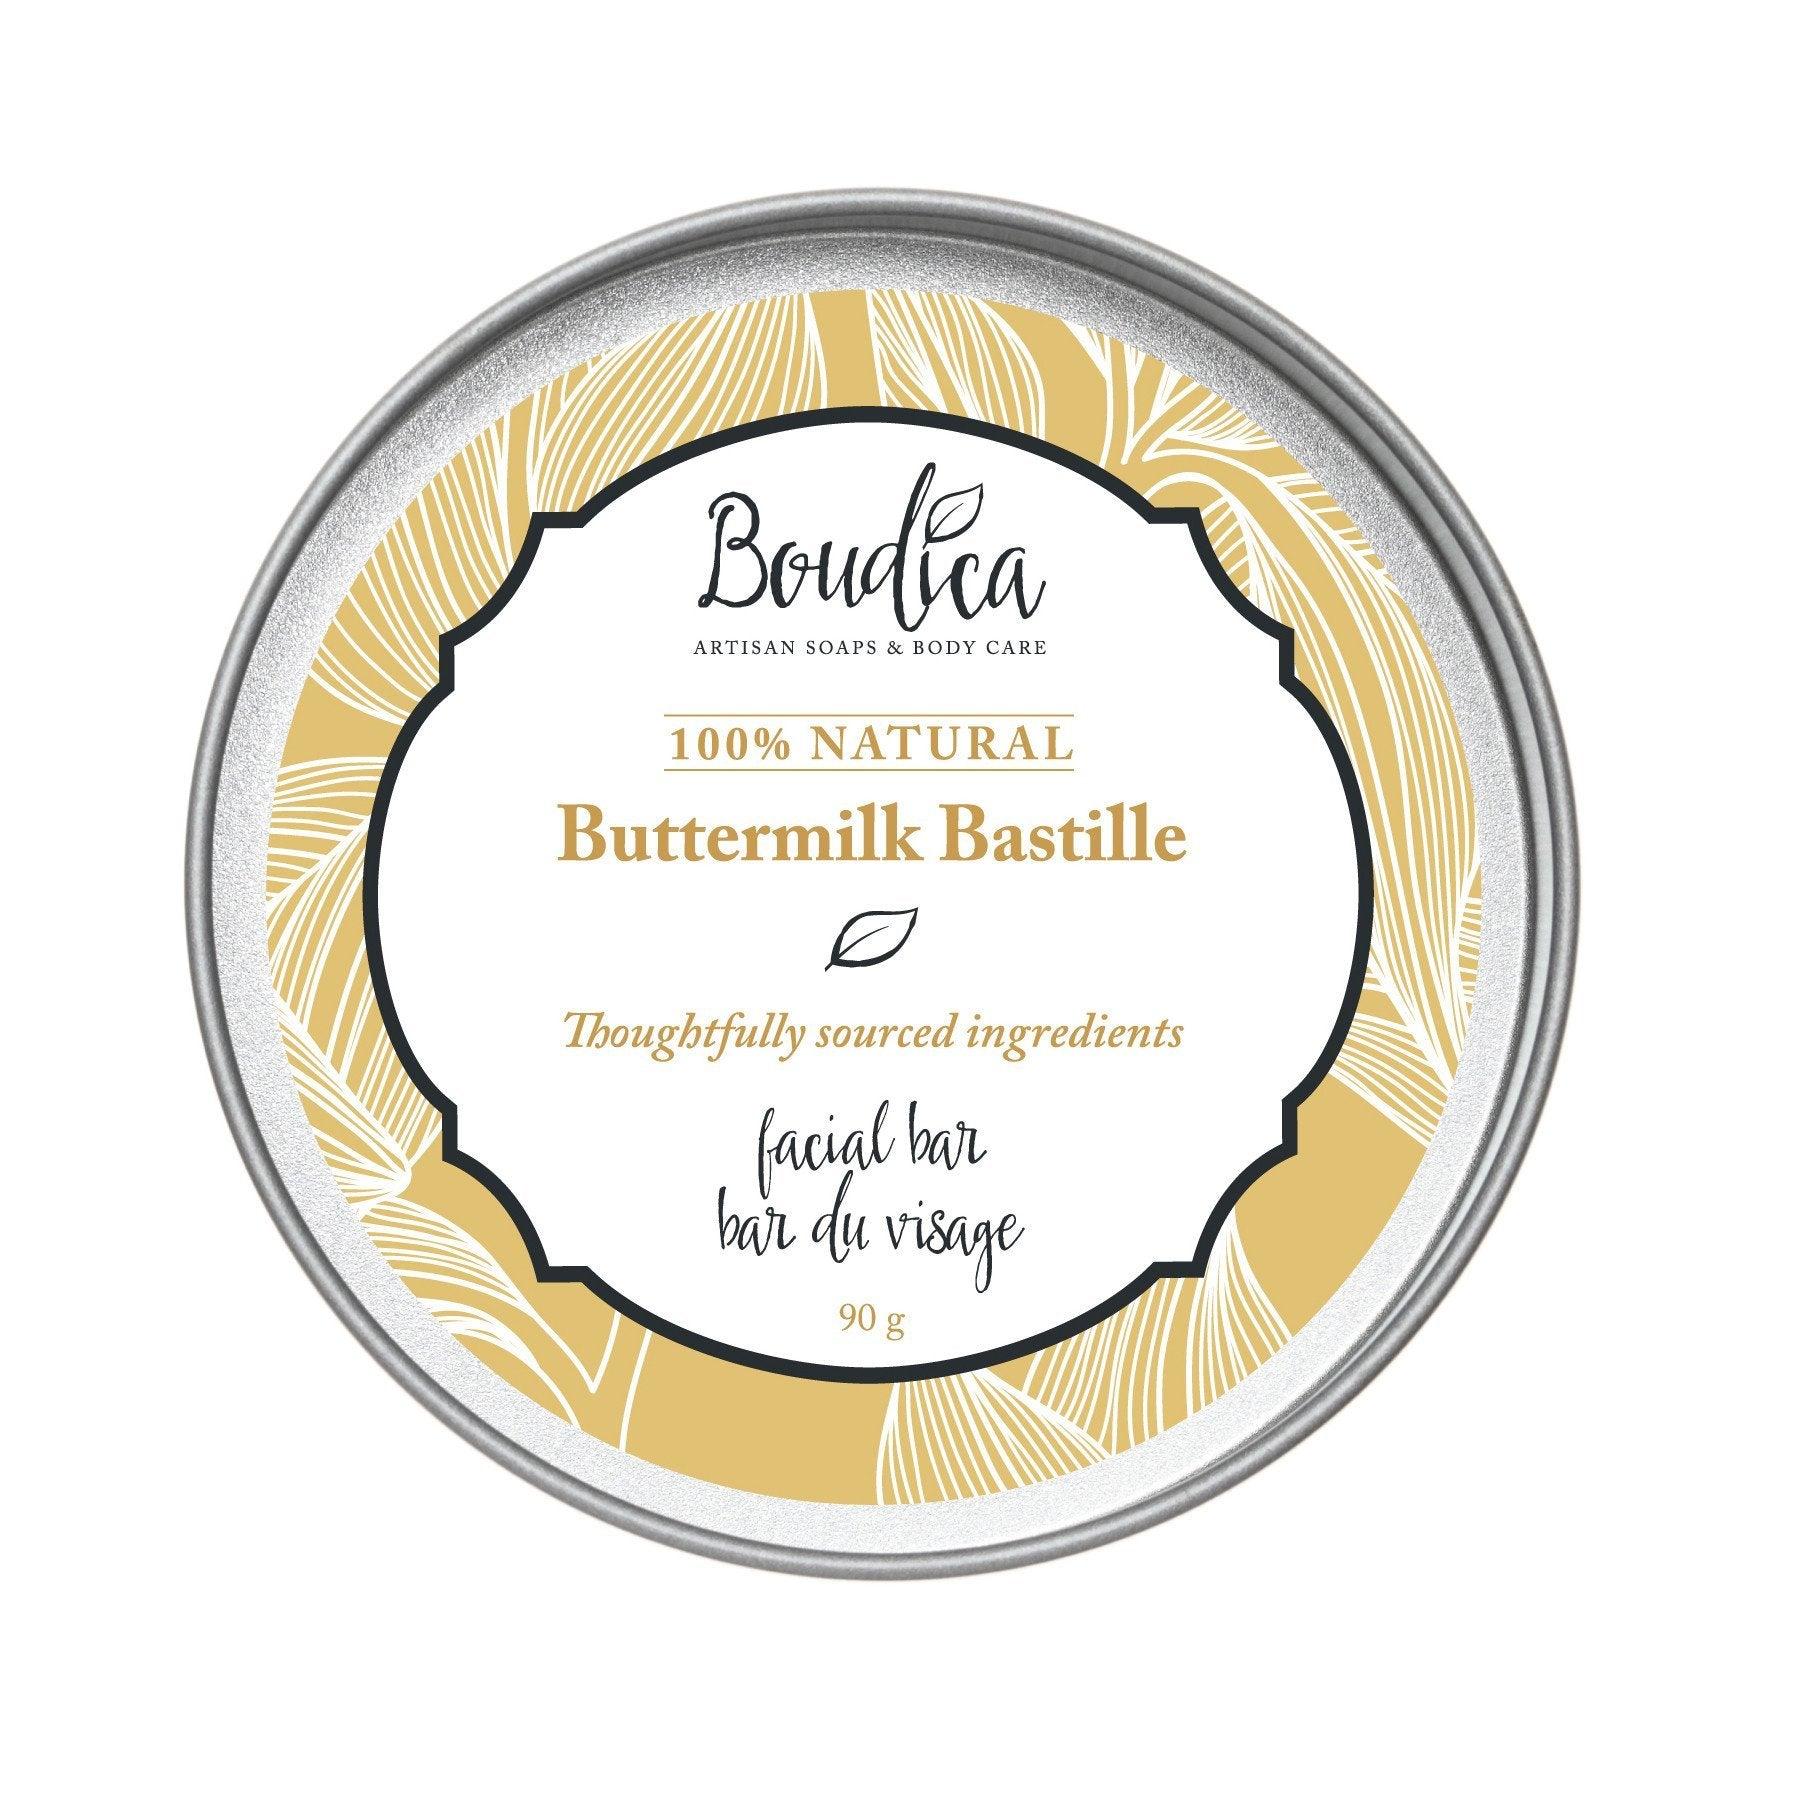 Buttermilk Bastille soap, gift packaging - Boudica Body Care